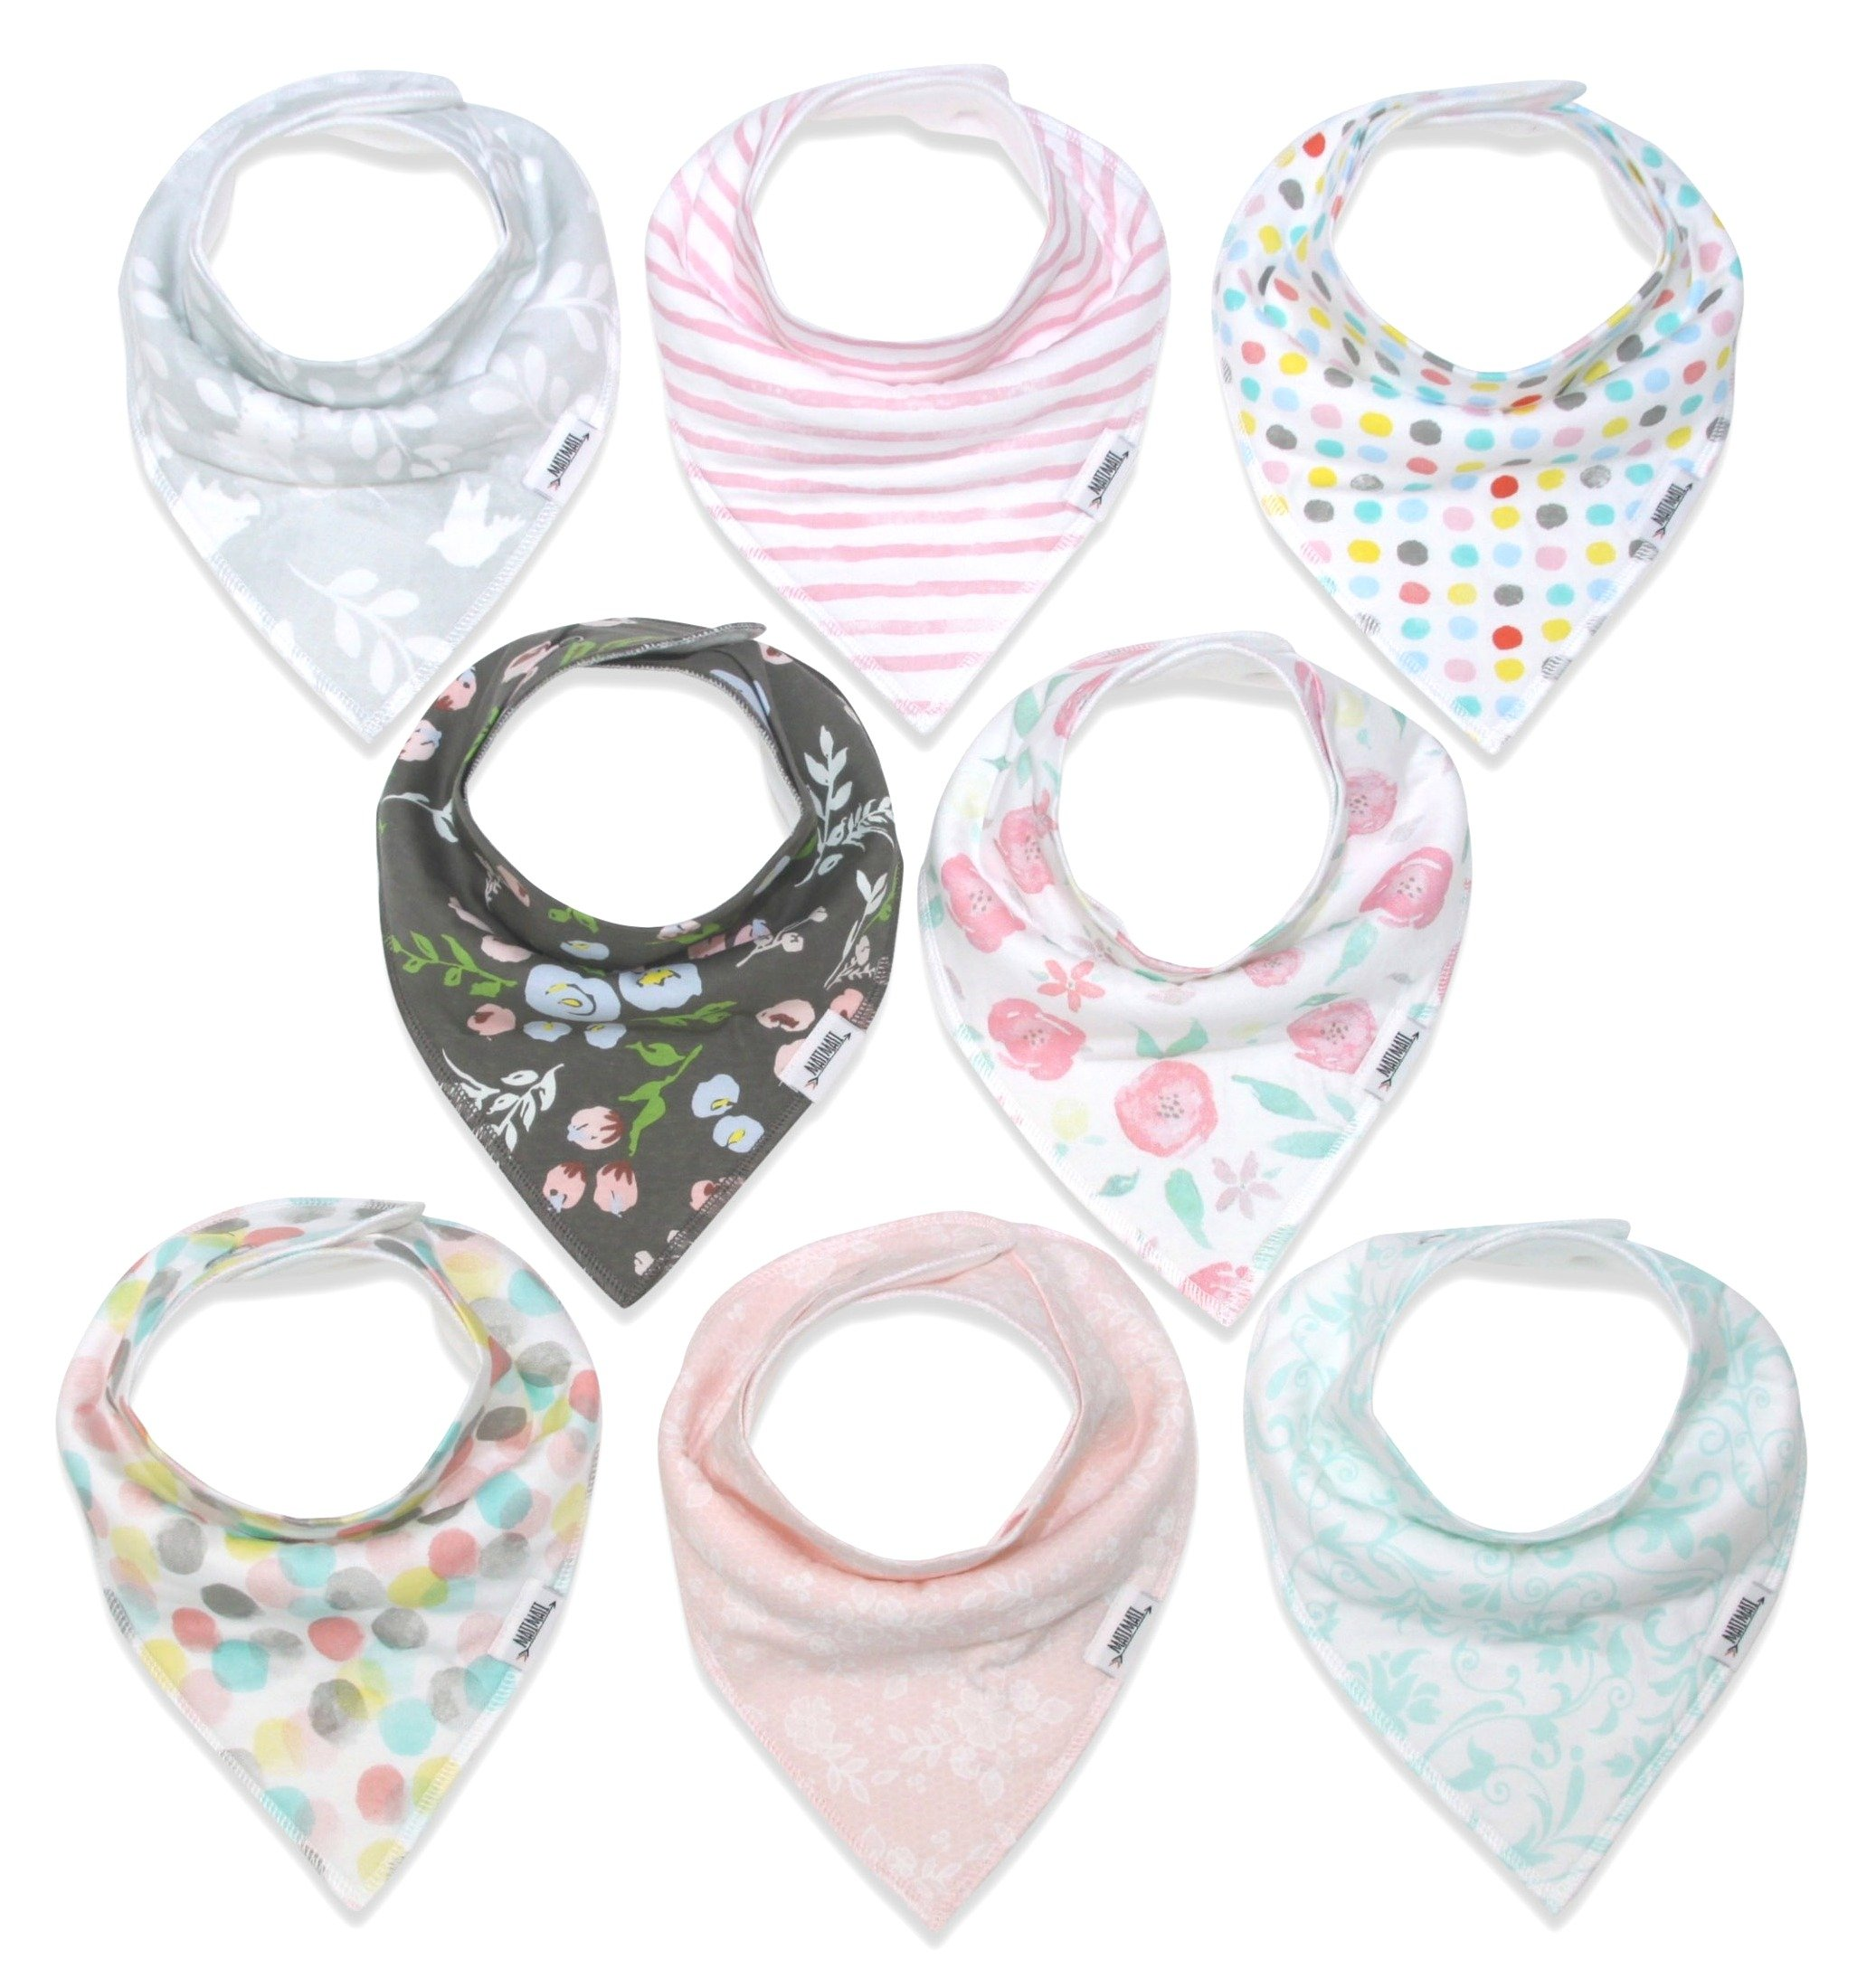 Baby Bandana Drool Bibs for Girls, 8-Pack Organic Absorbent Drooling & Teething Bib Set by Matimati''Rosy Mint'' by Matimati Baby